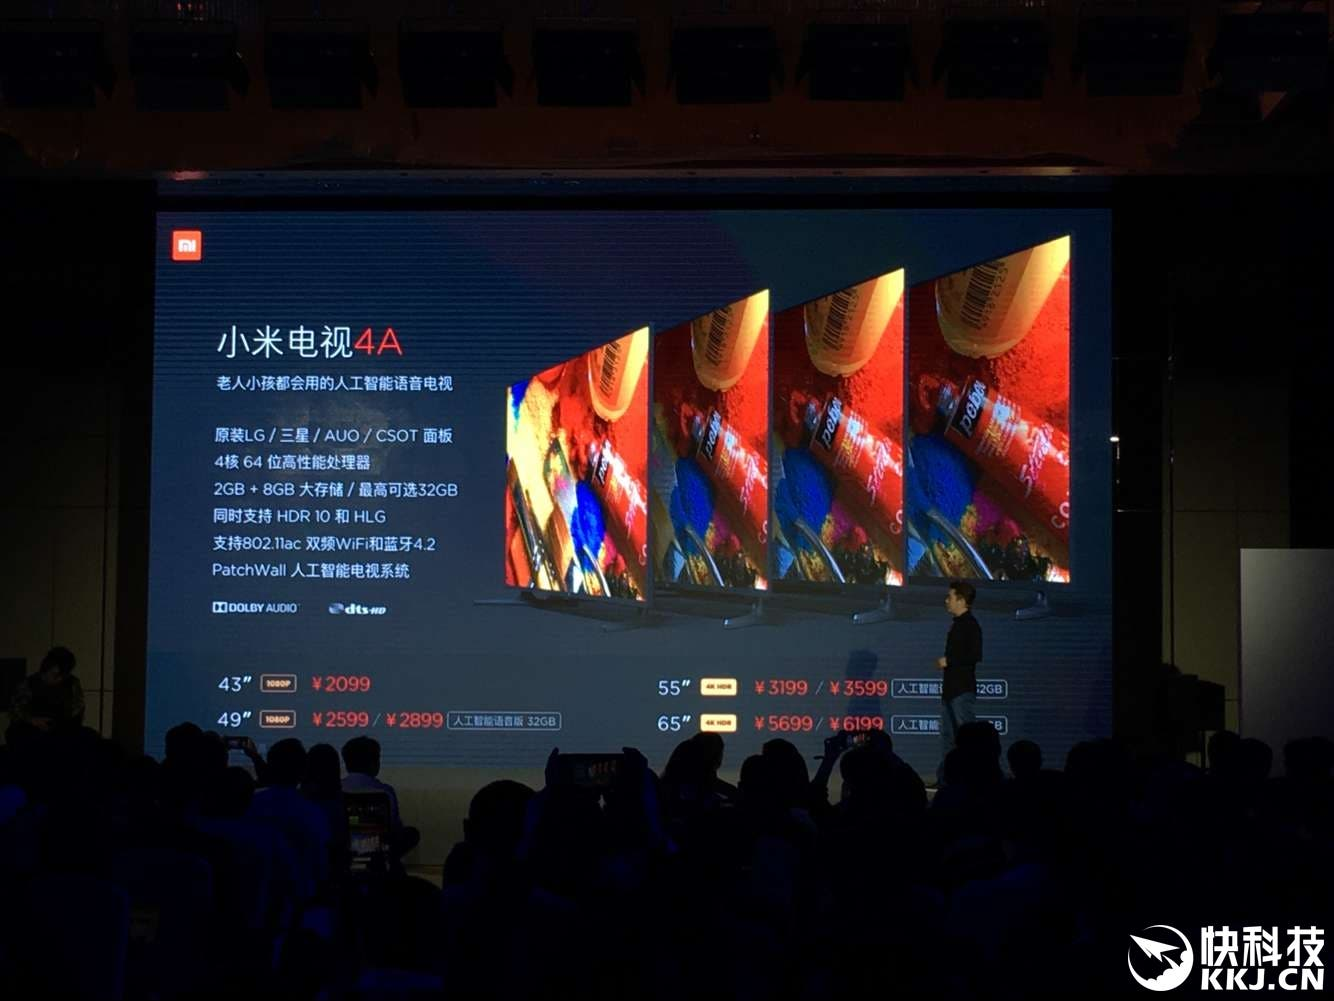 xiaomi tv 4a lineup officially launched starting at 2099 yuan